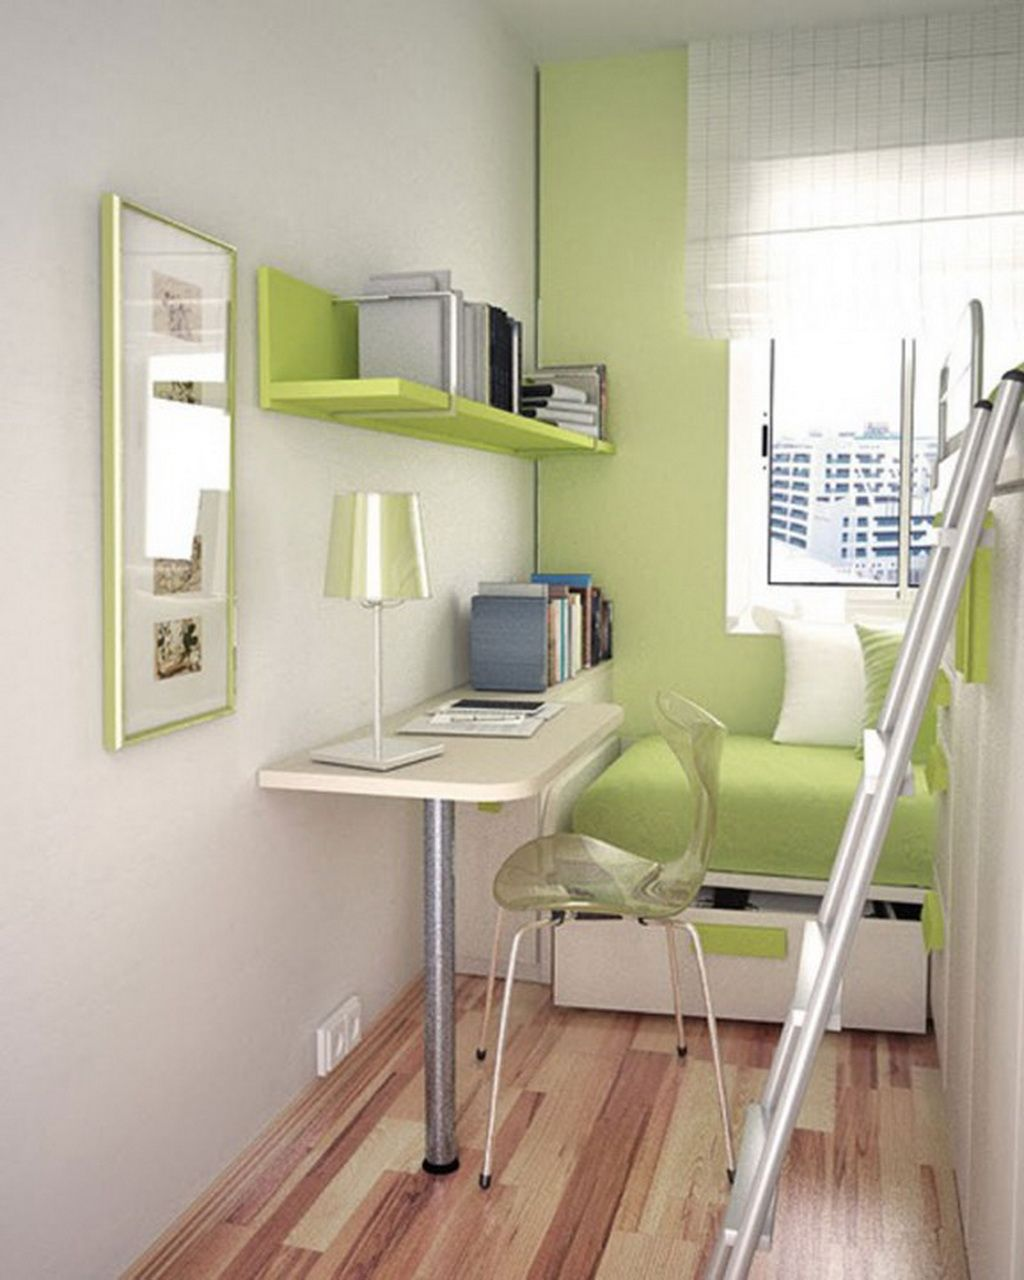 30 Home Decorating Ideas For Small Apartments | Small space ...